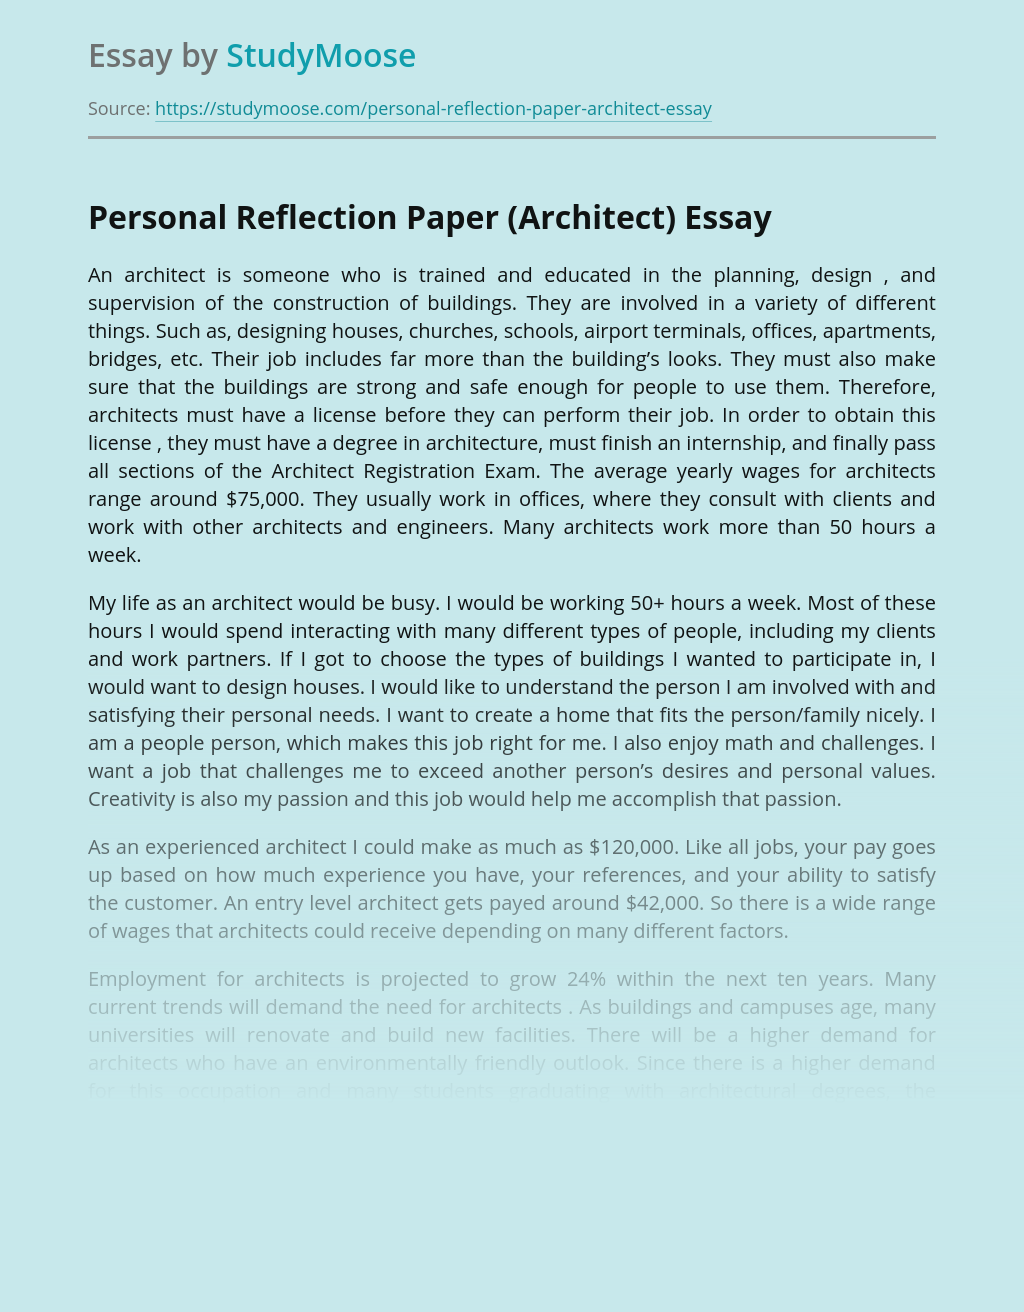 Personal Reflection Paper (Architect)